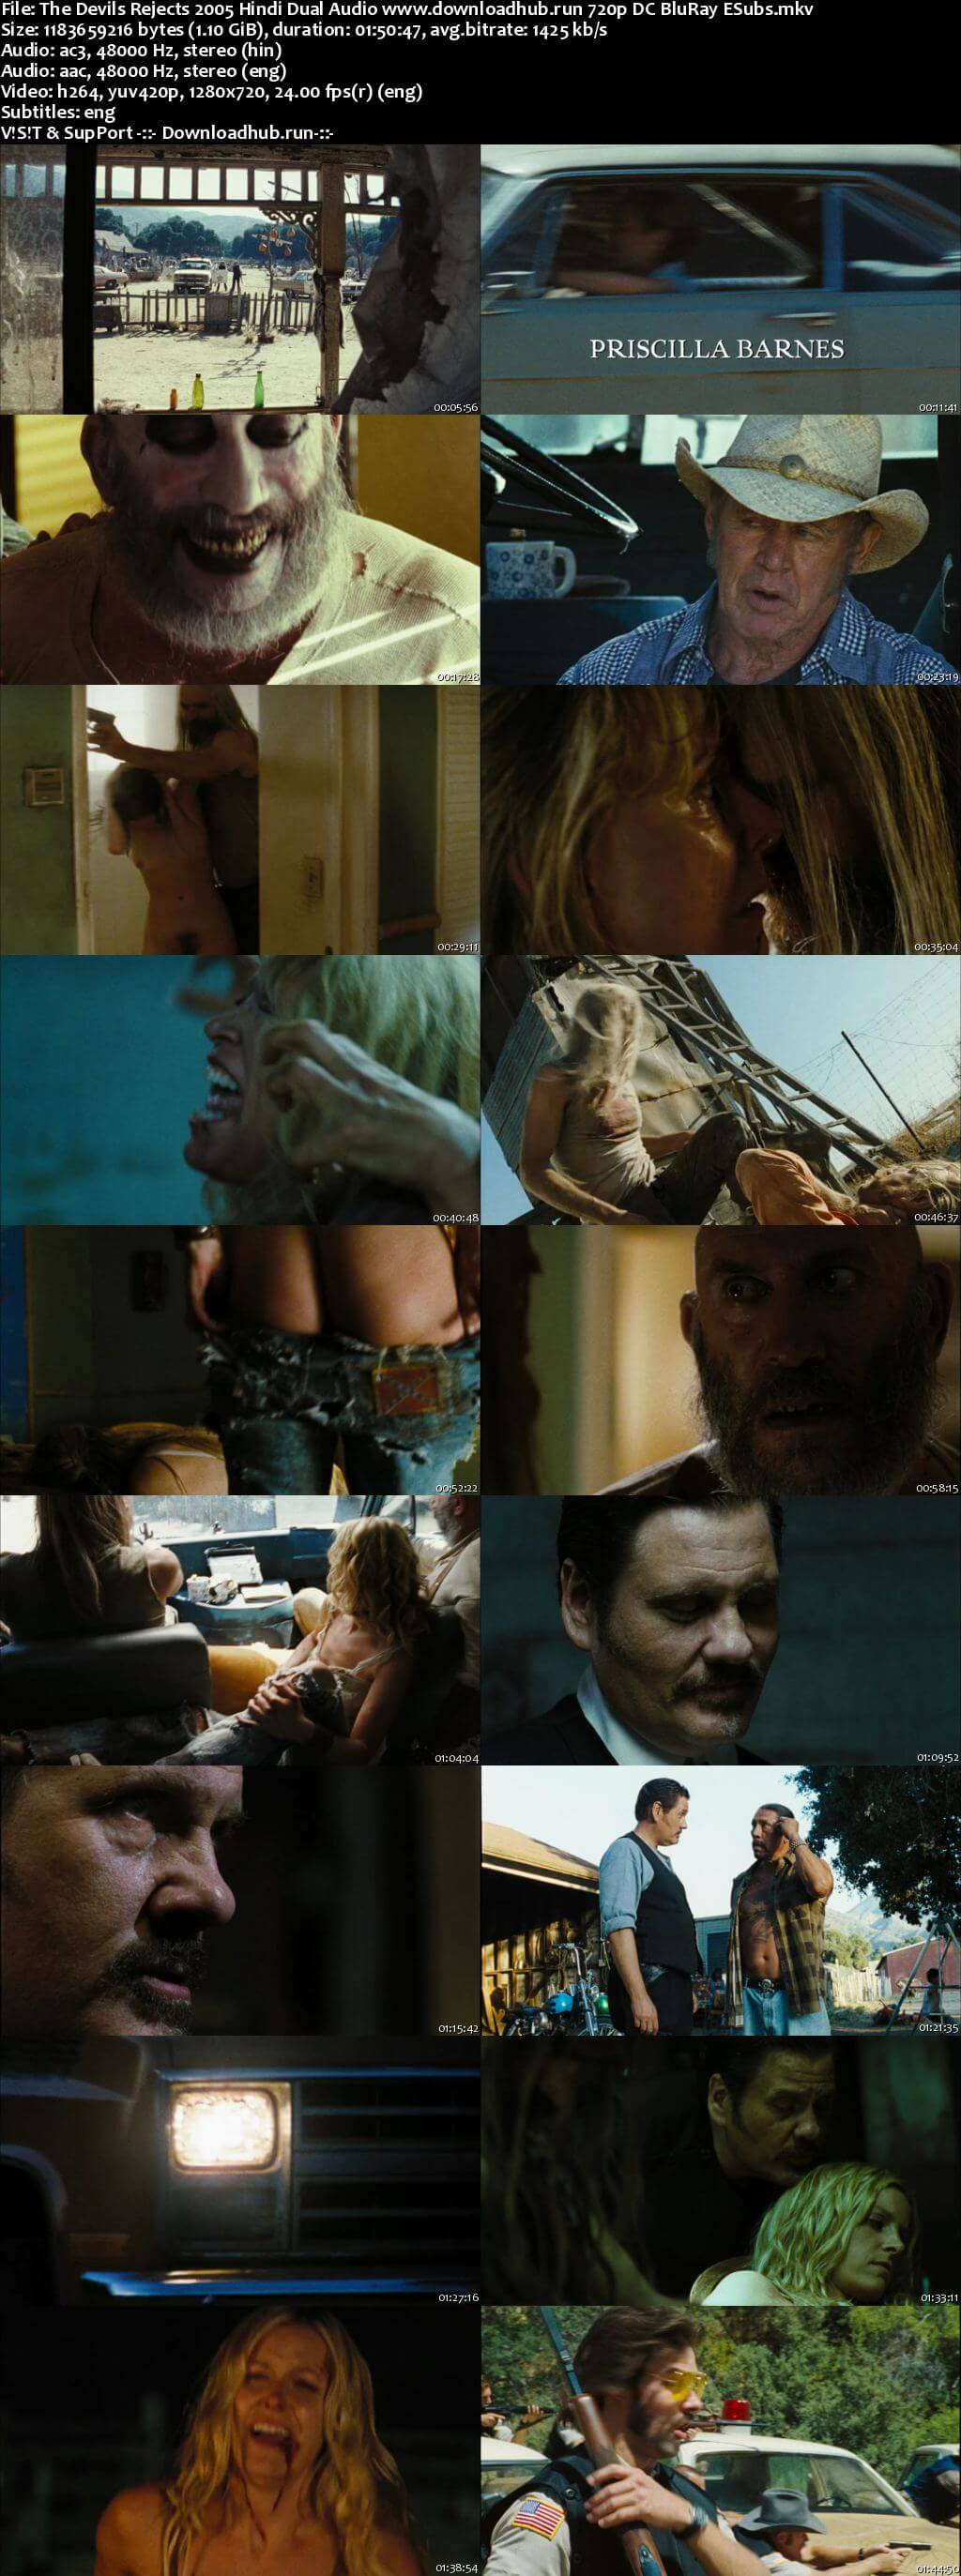 The Devils Rejects 2005 Hindi Dual Audio 720p DC BluRay ESubs